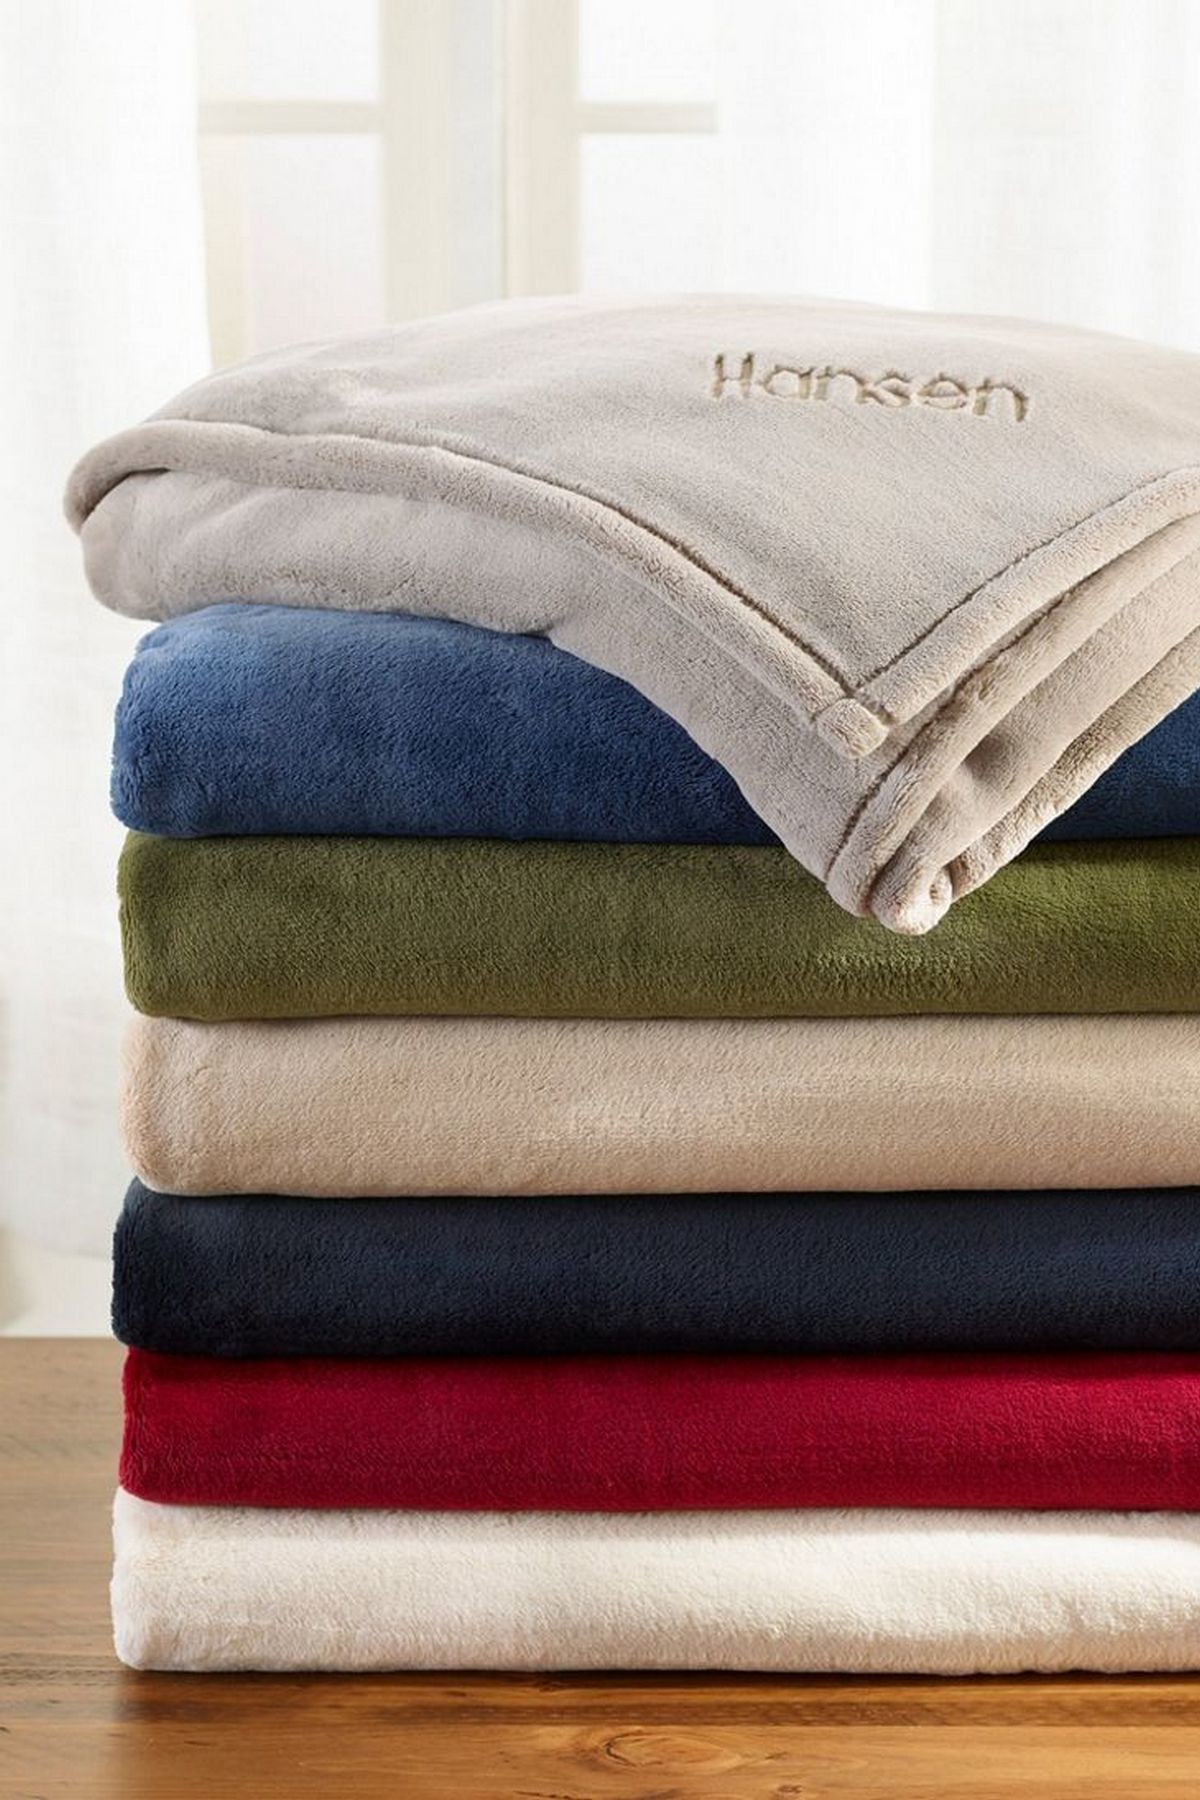 The Best Blankets To Buy In 2020